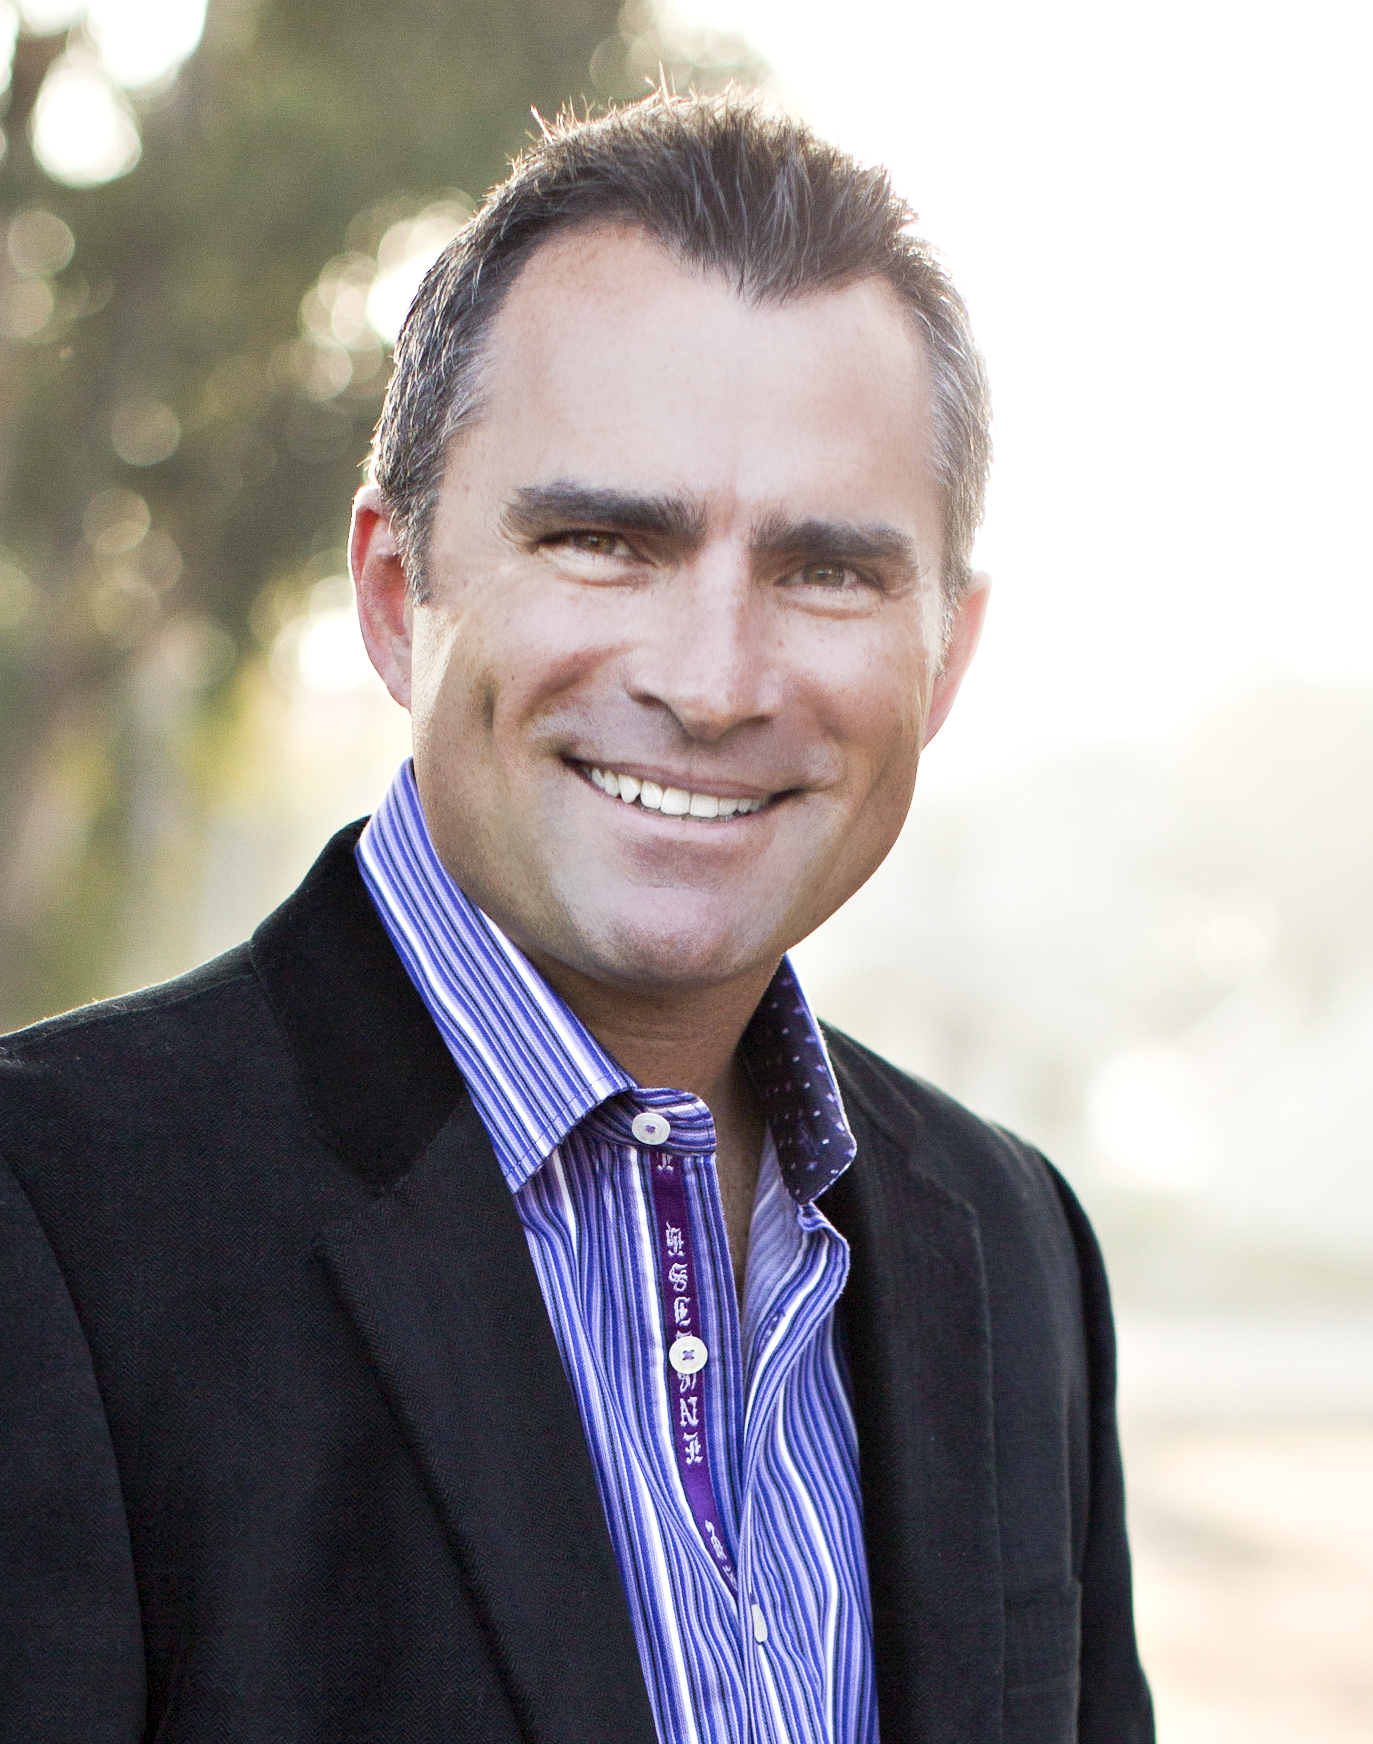 Brock MacLean has joined RealPage as SVP of Business Development. (Photo: Business Wire)